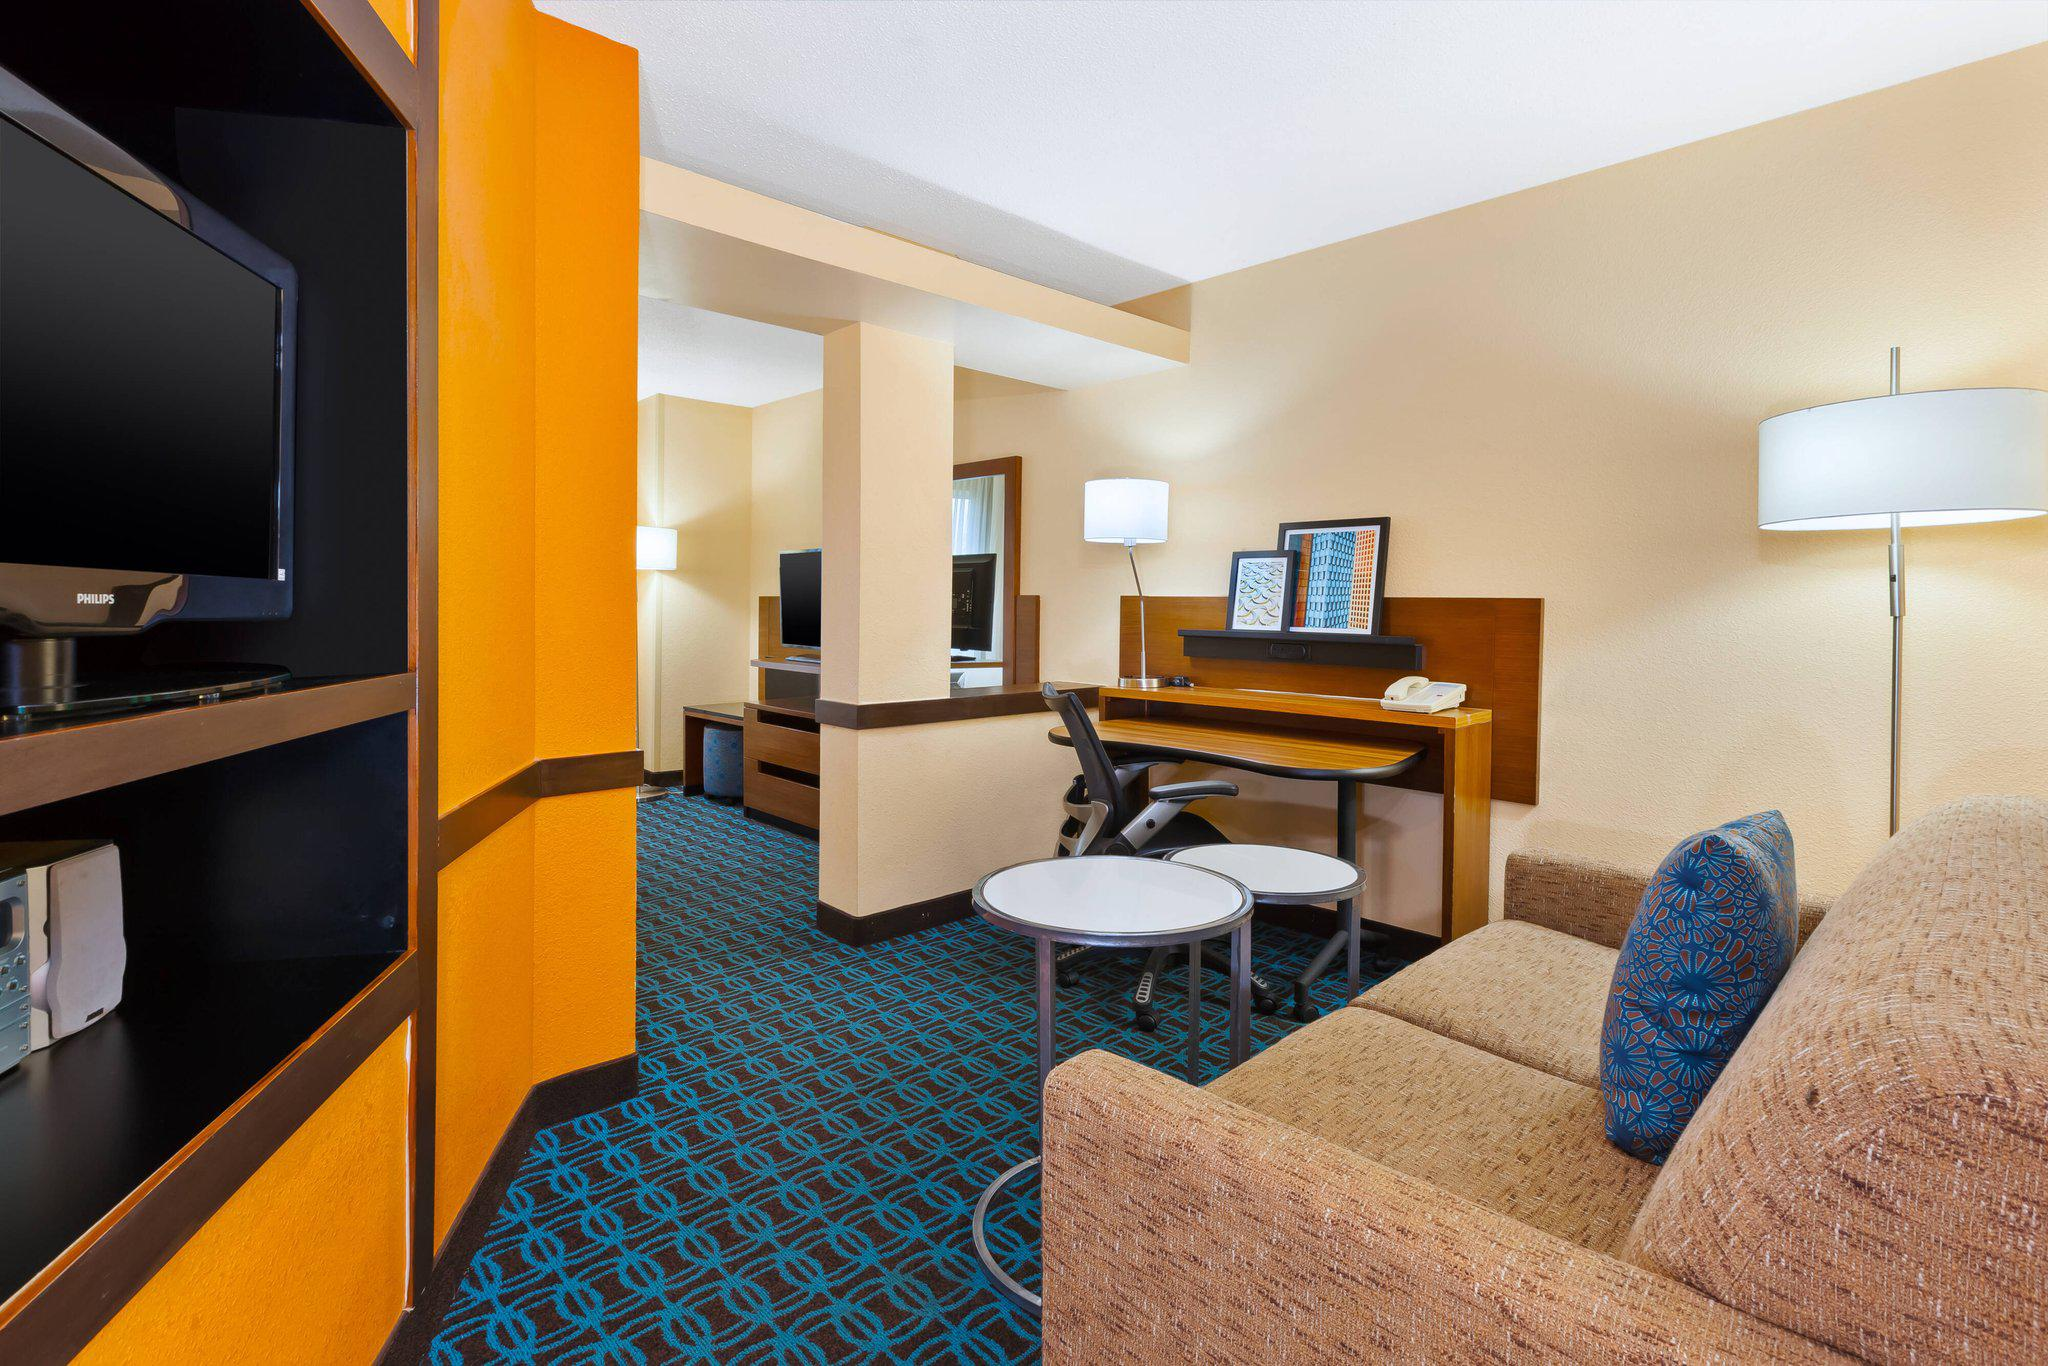 Fairfield Inn & Suites by Marriott Columbus East